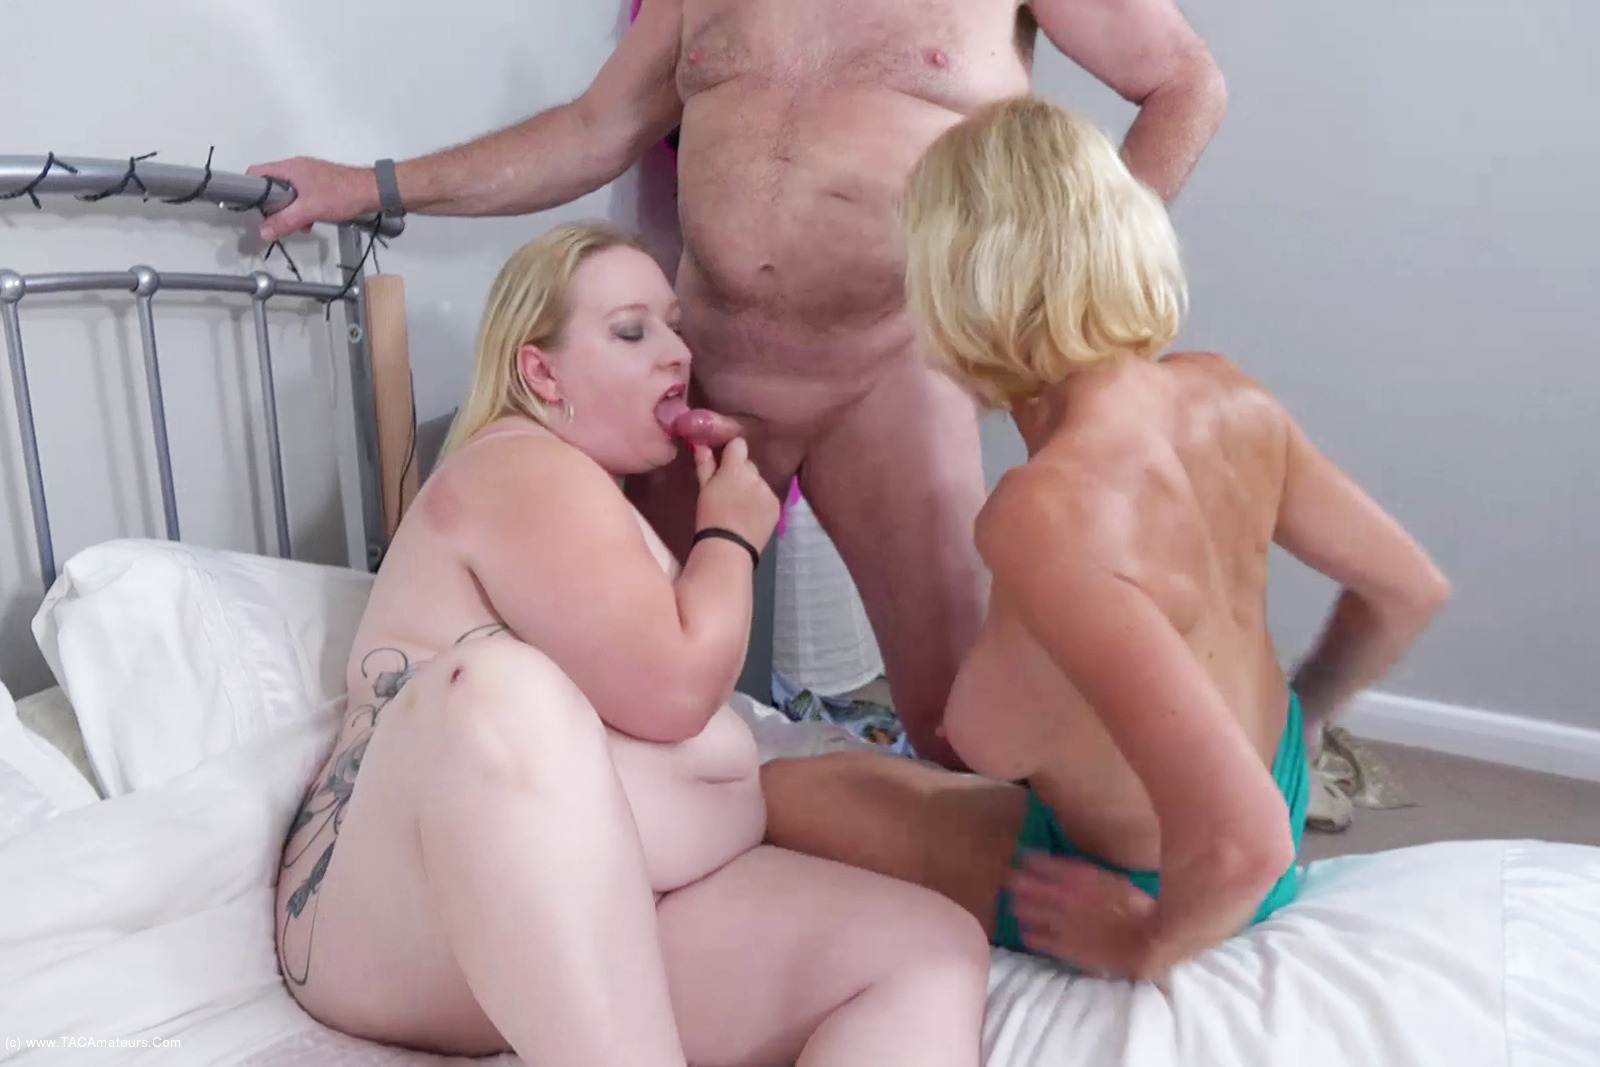 DirtyDoctor - The Window Cleaner Pt1 scene 3